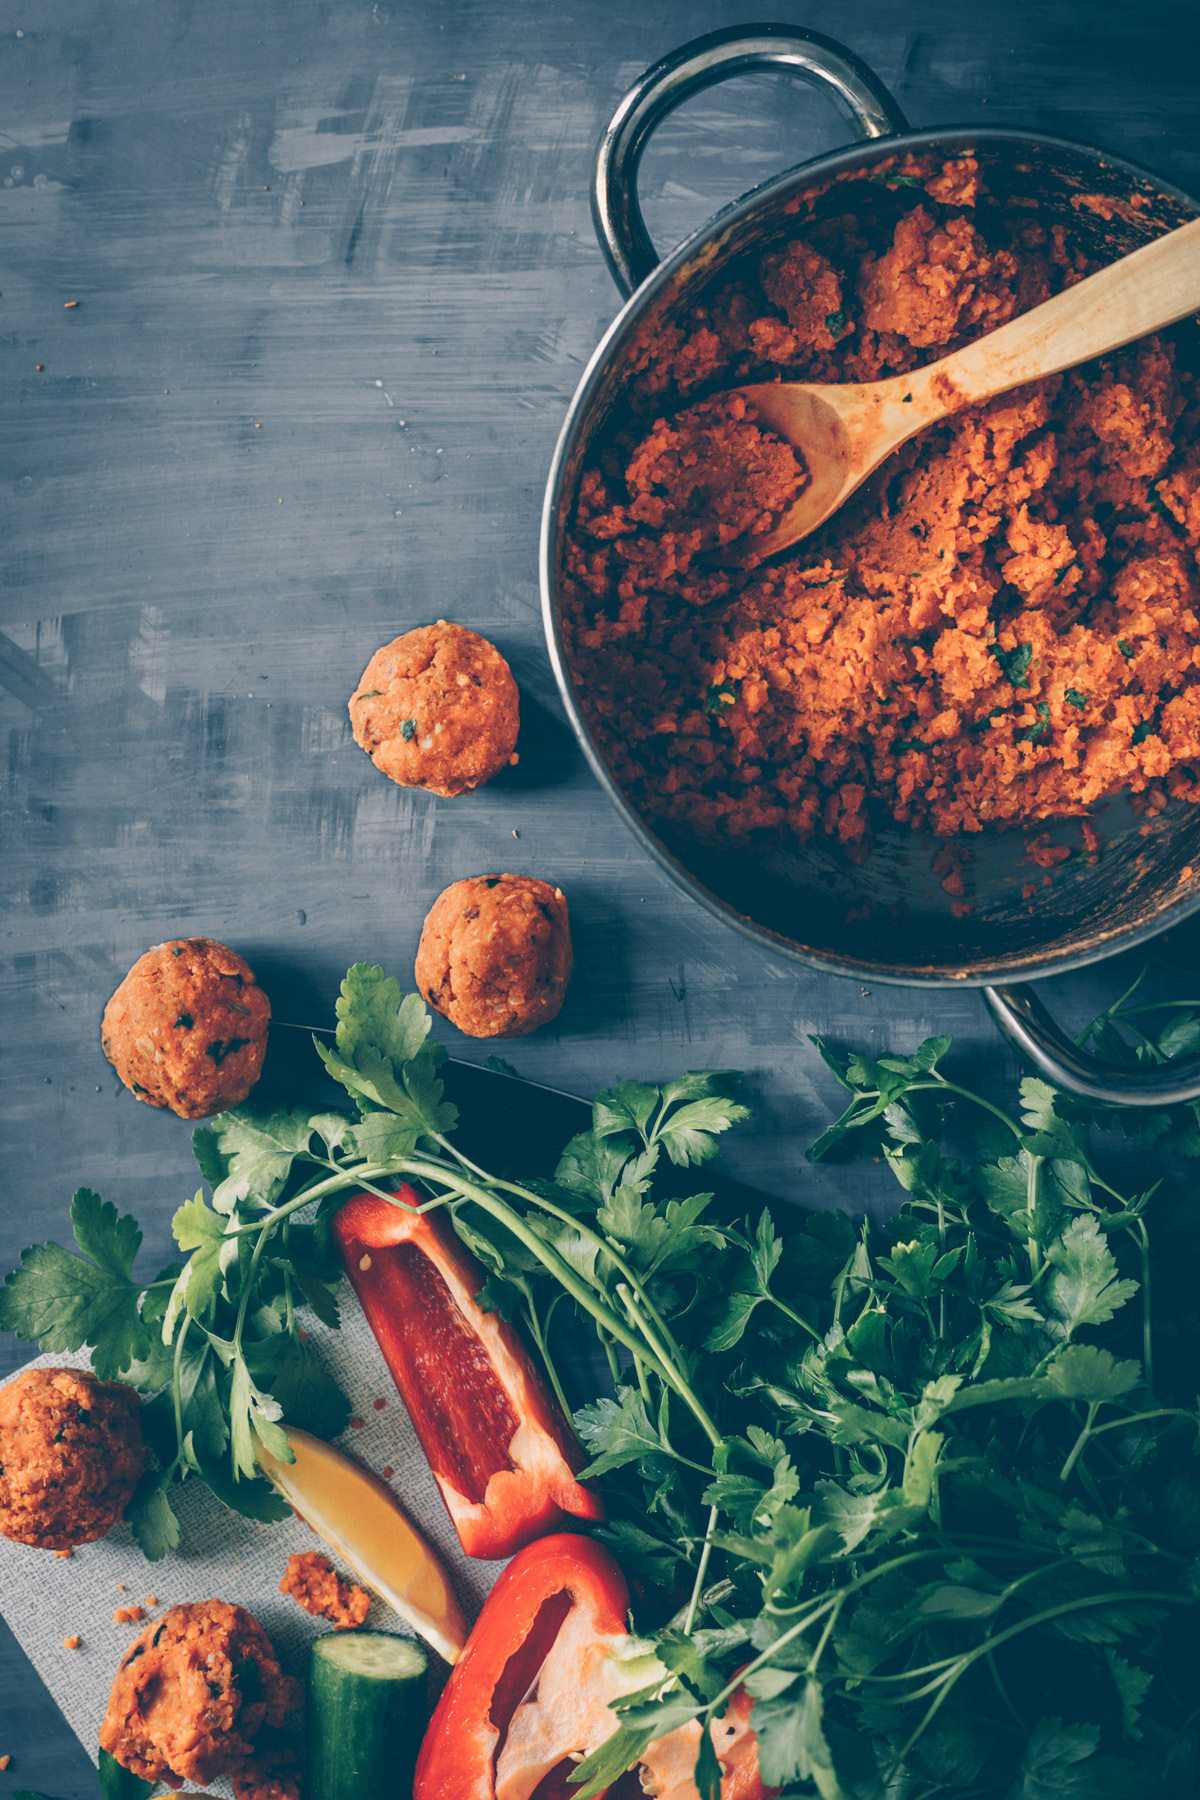 Turkish Lentil Balls Mezze Platter (vegan) by Kati of black.white.vivid.